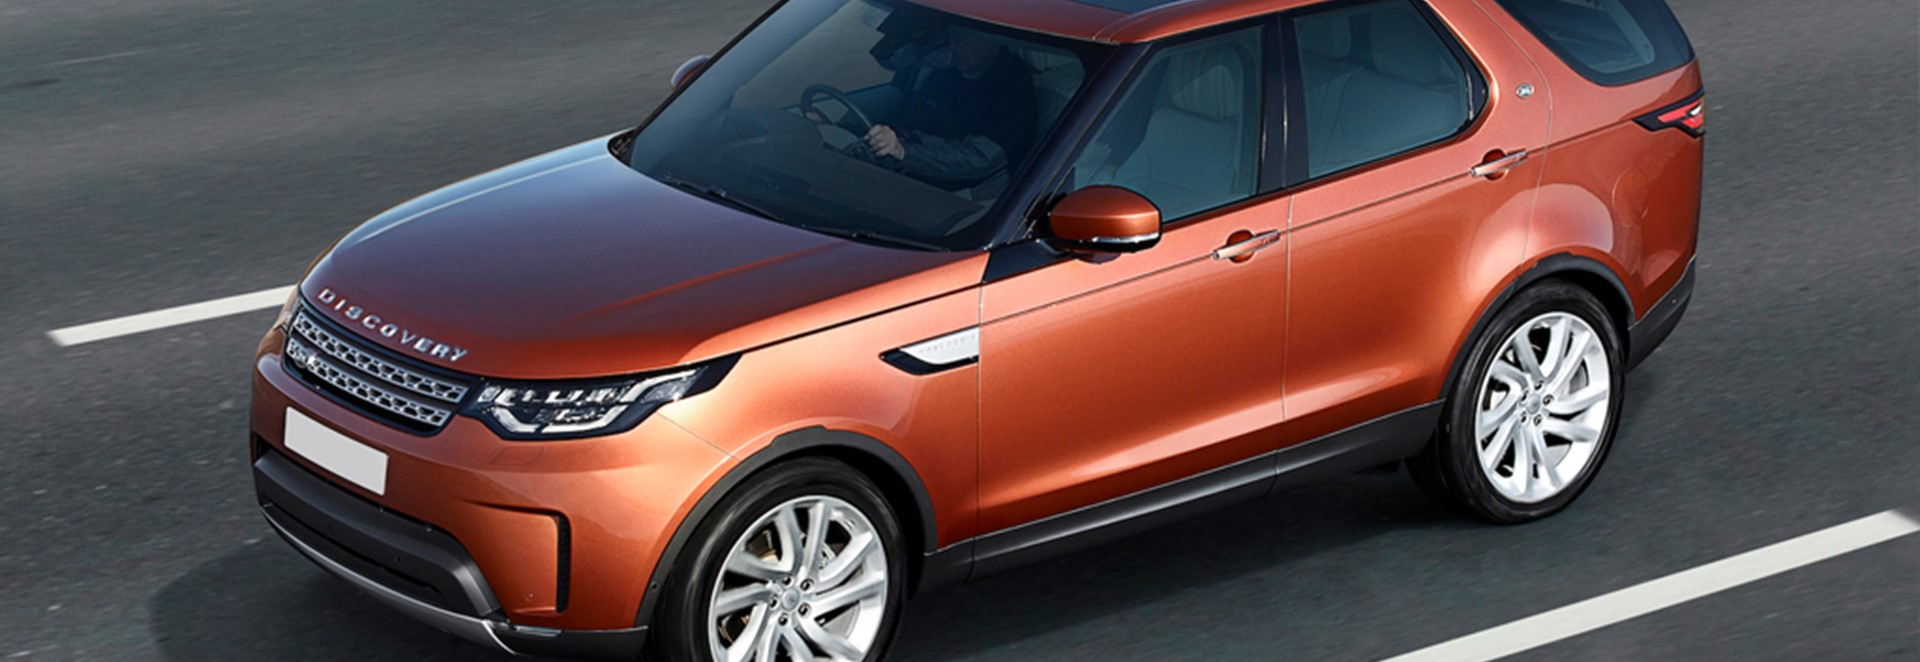 Land Rover Discovery Prices